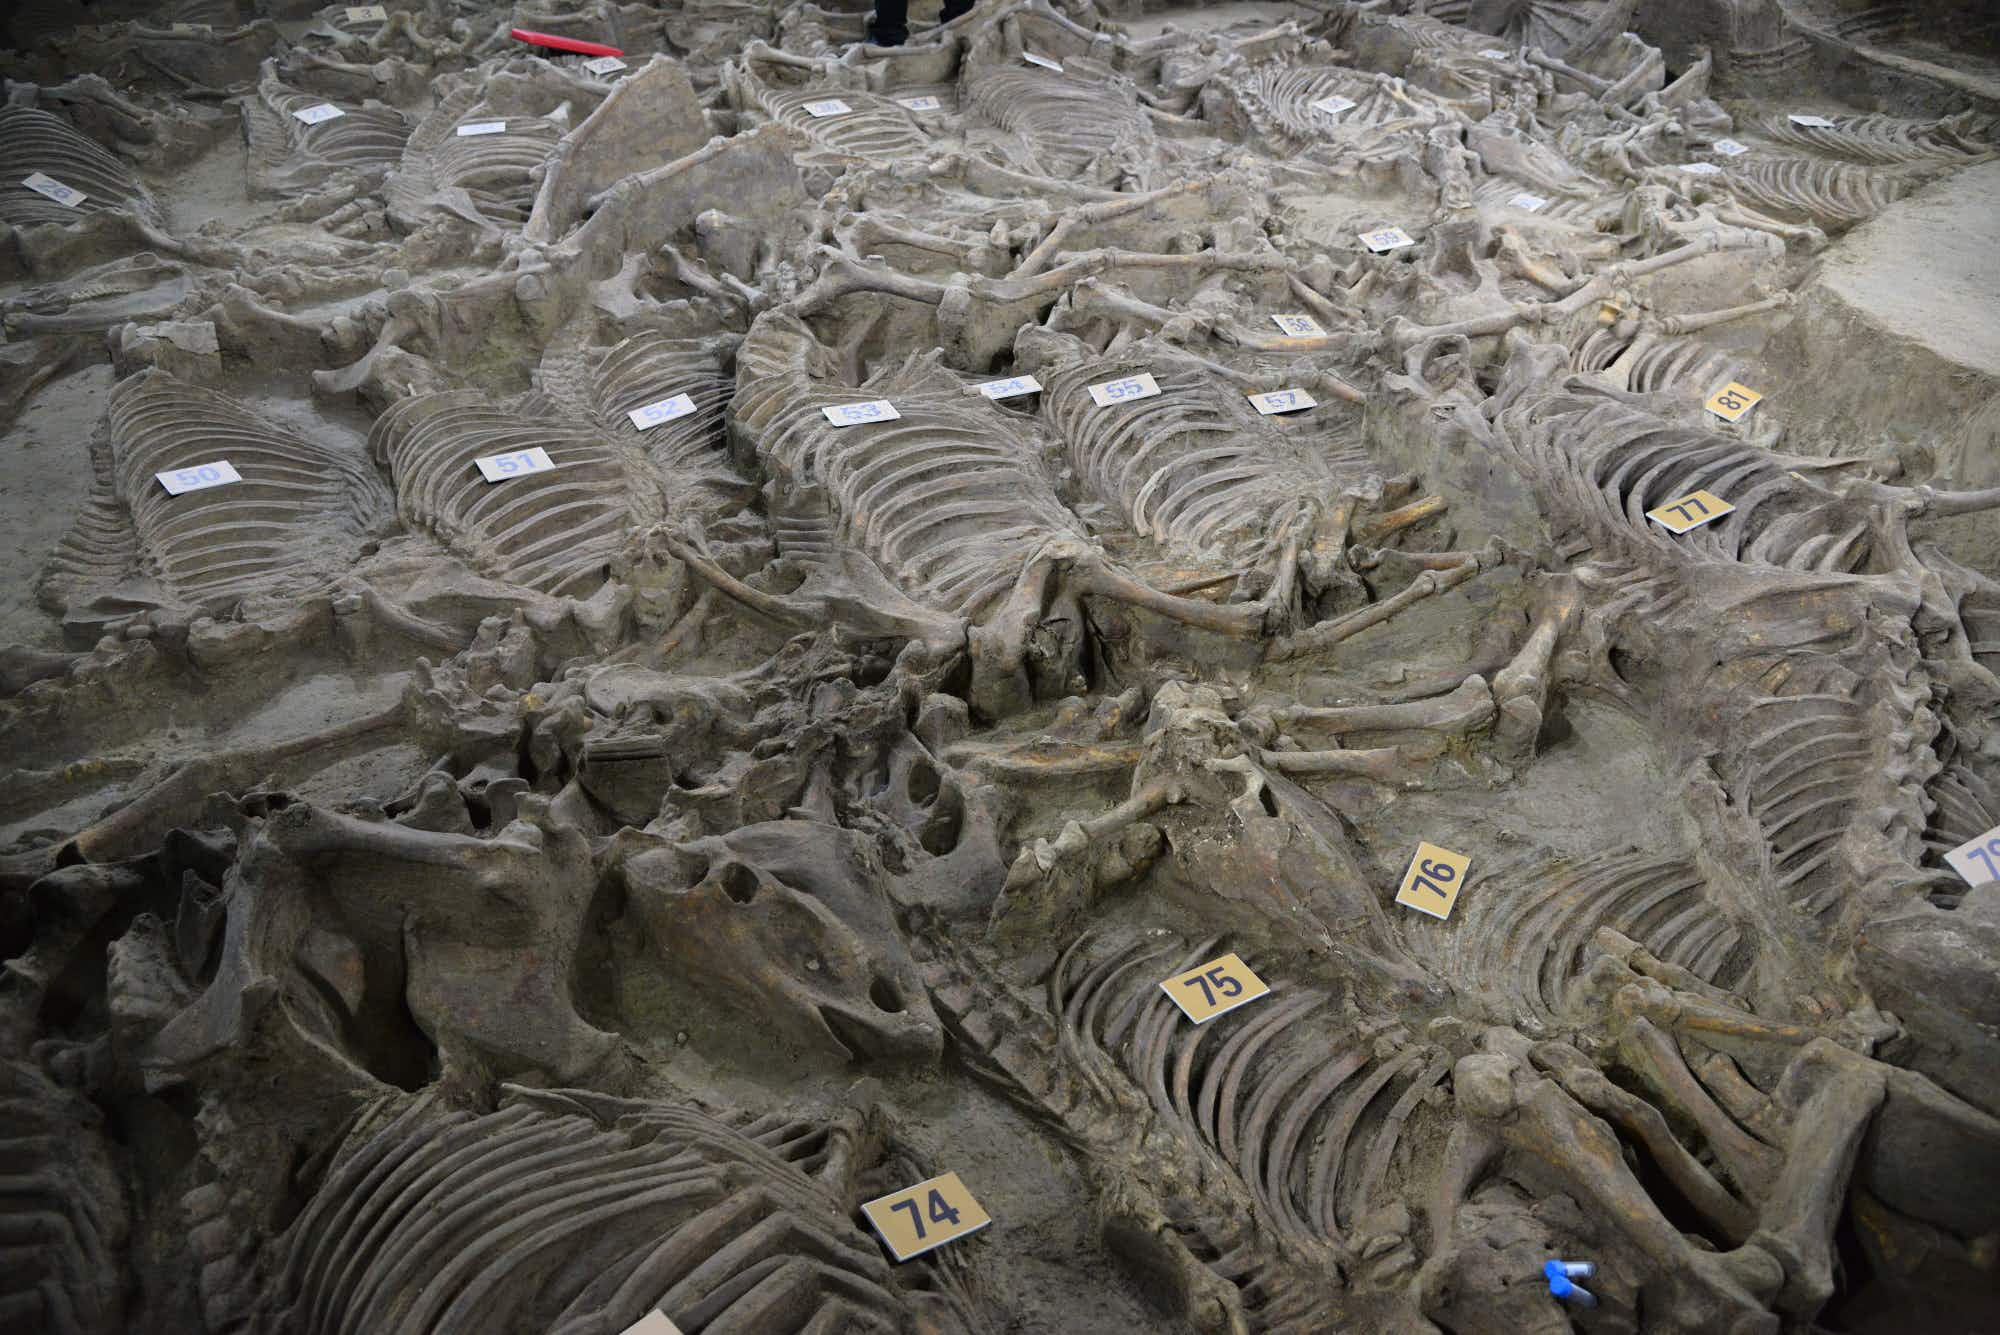 A huge tomb full of ancient chariots unearthed in central China